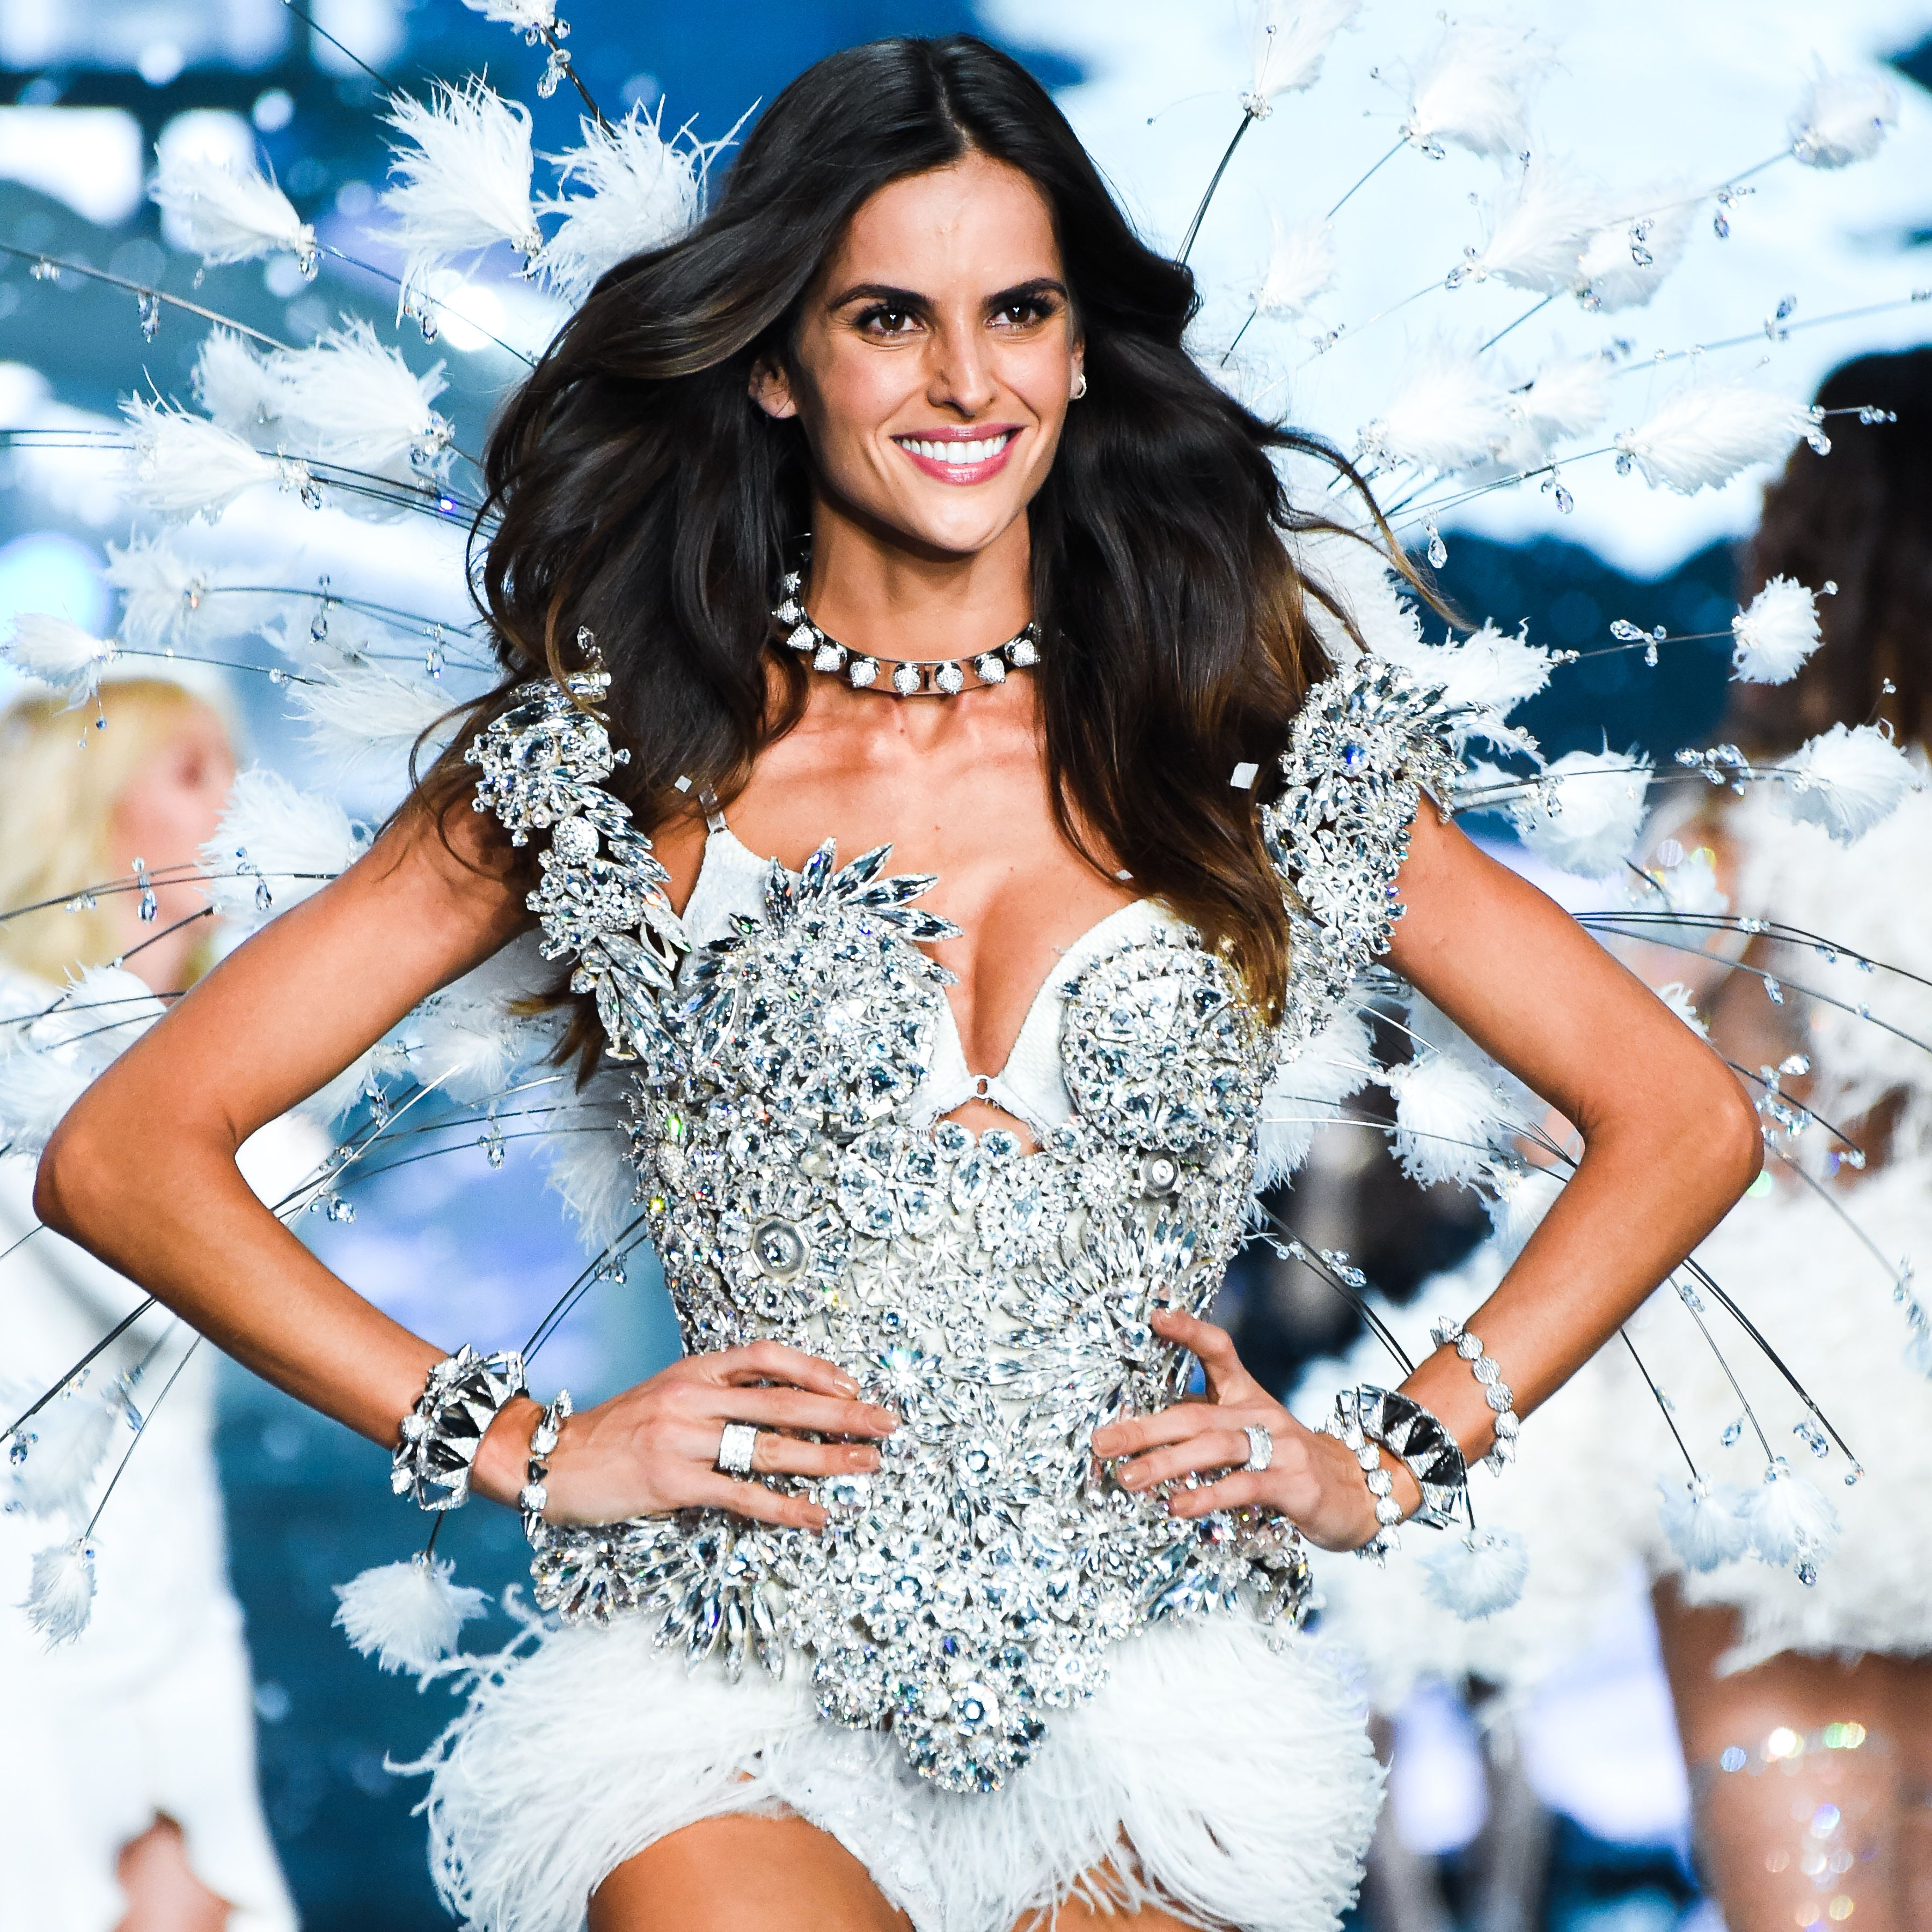 Another look designed by Serkan Cura adorned with #Swarovski crystals for tonight's #VSFashionShow. See it in action on CBS at 10/9c.